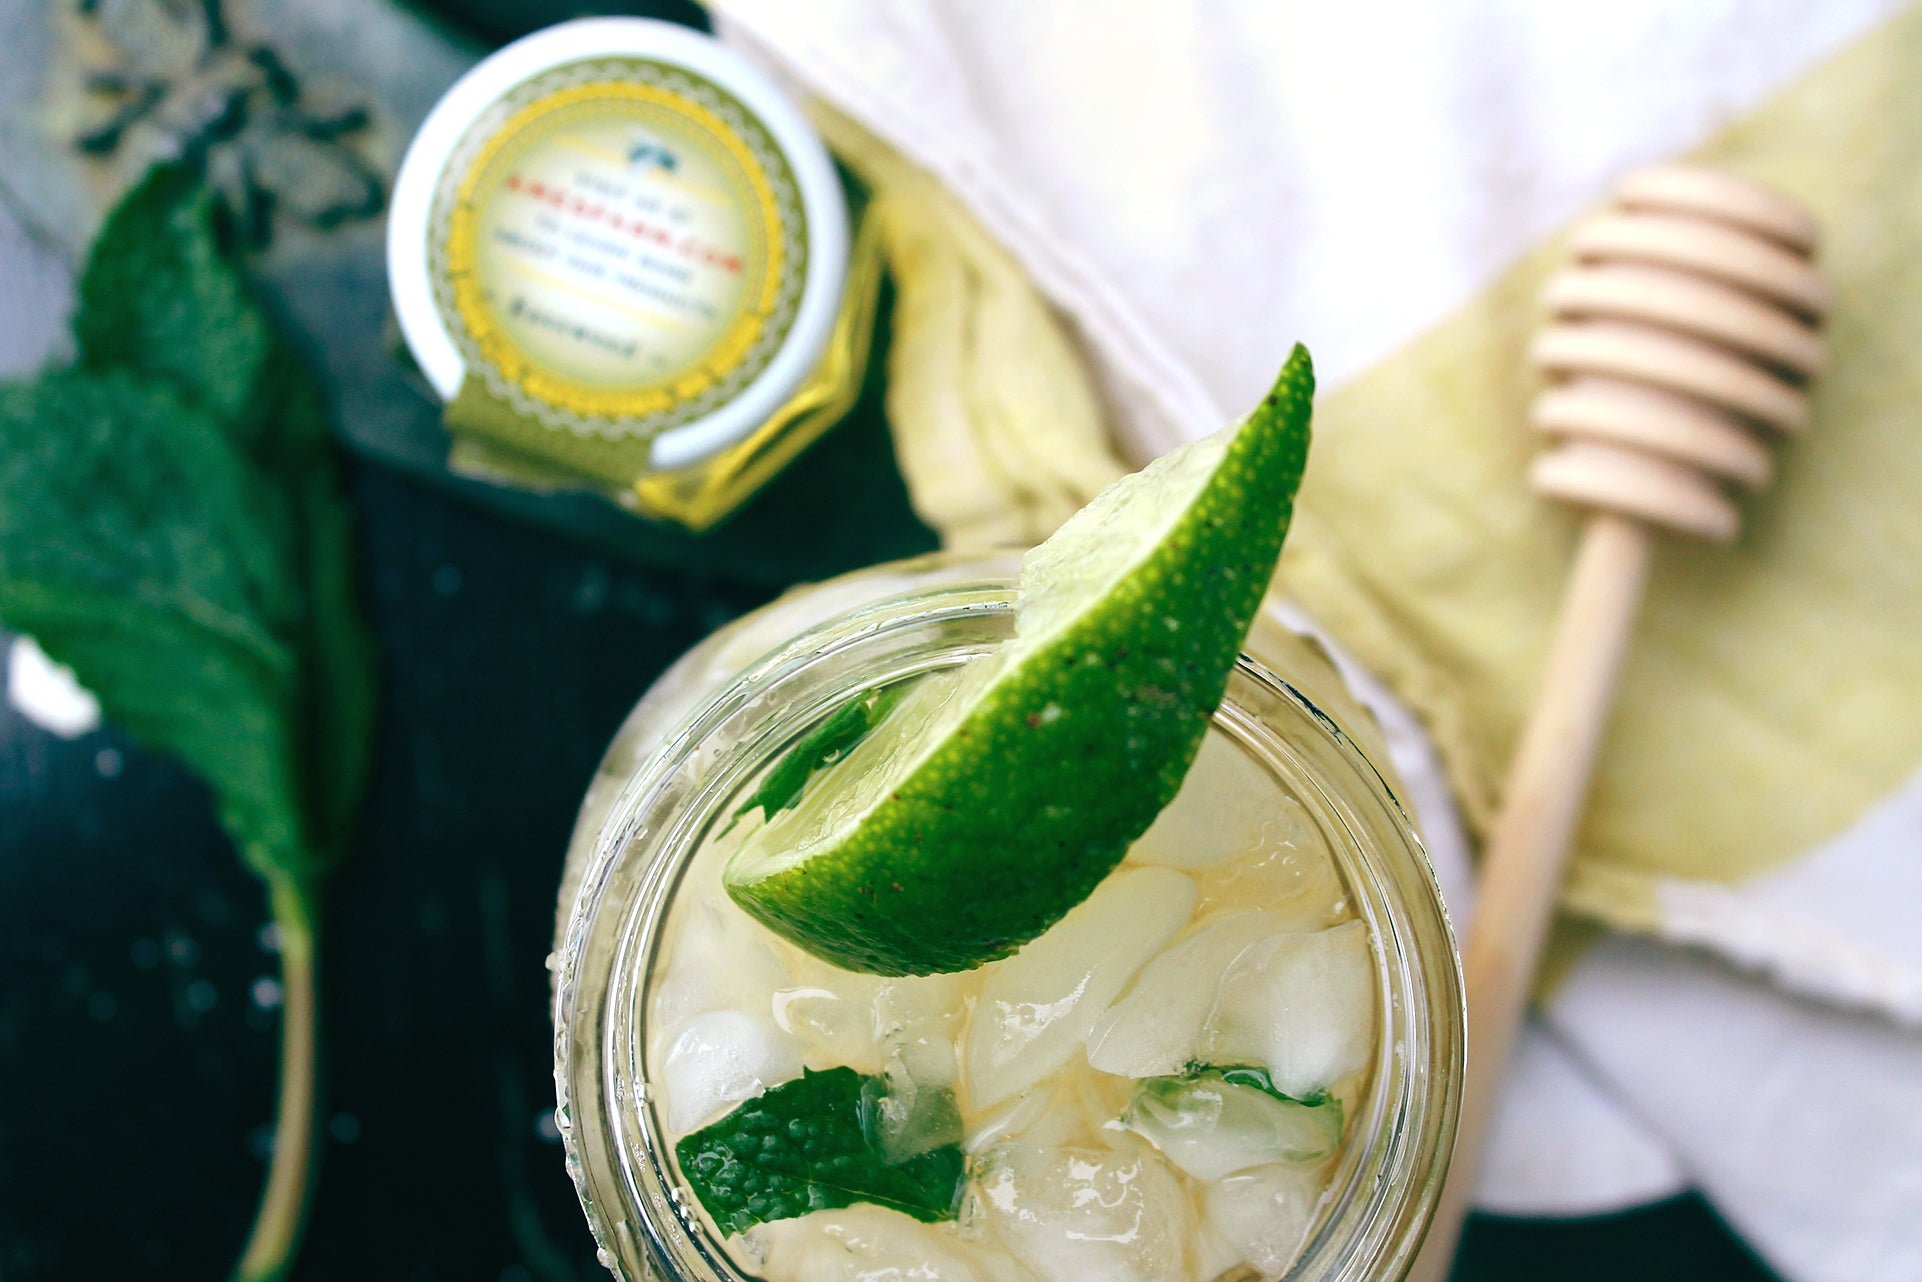 Minnesota Basswood Honey Mojito from Ames Farm